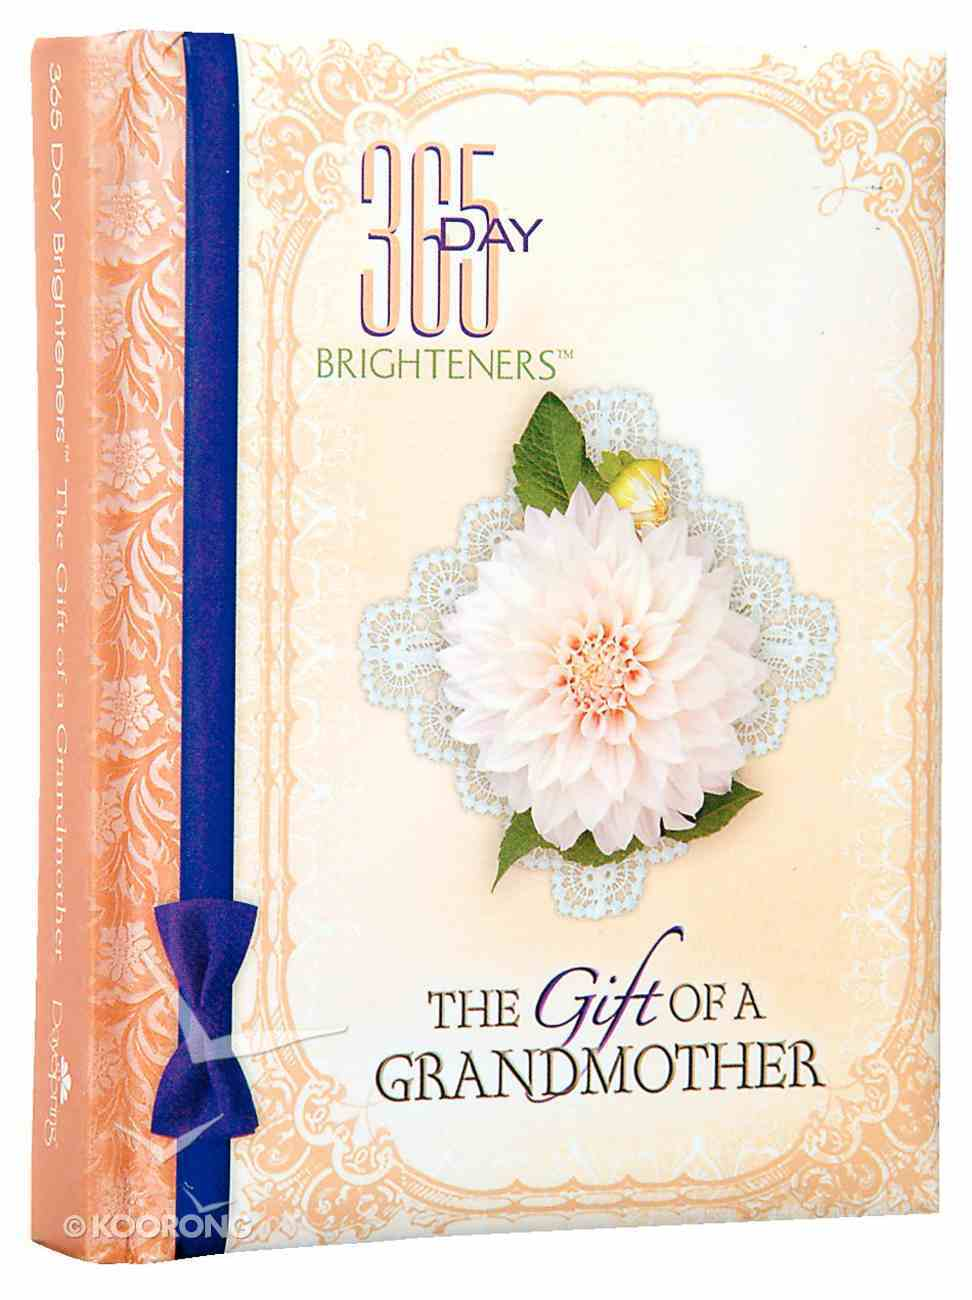 The Gift of a Grandmother (365 Day Brighteners Series) Hardback